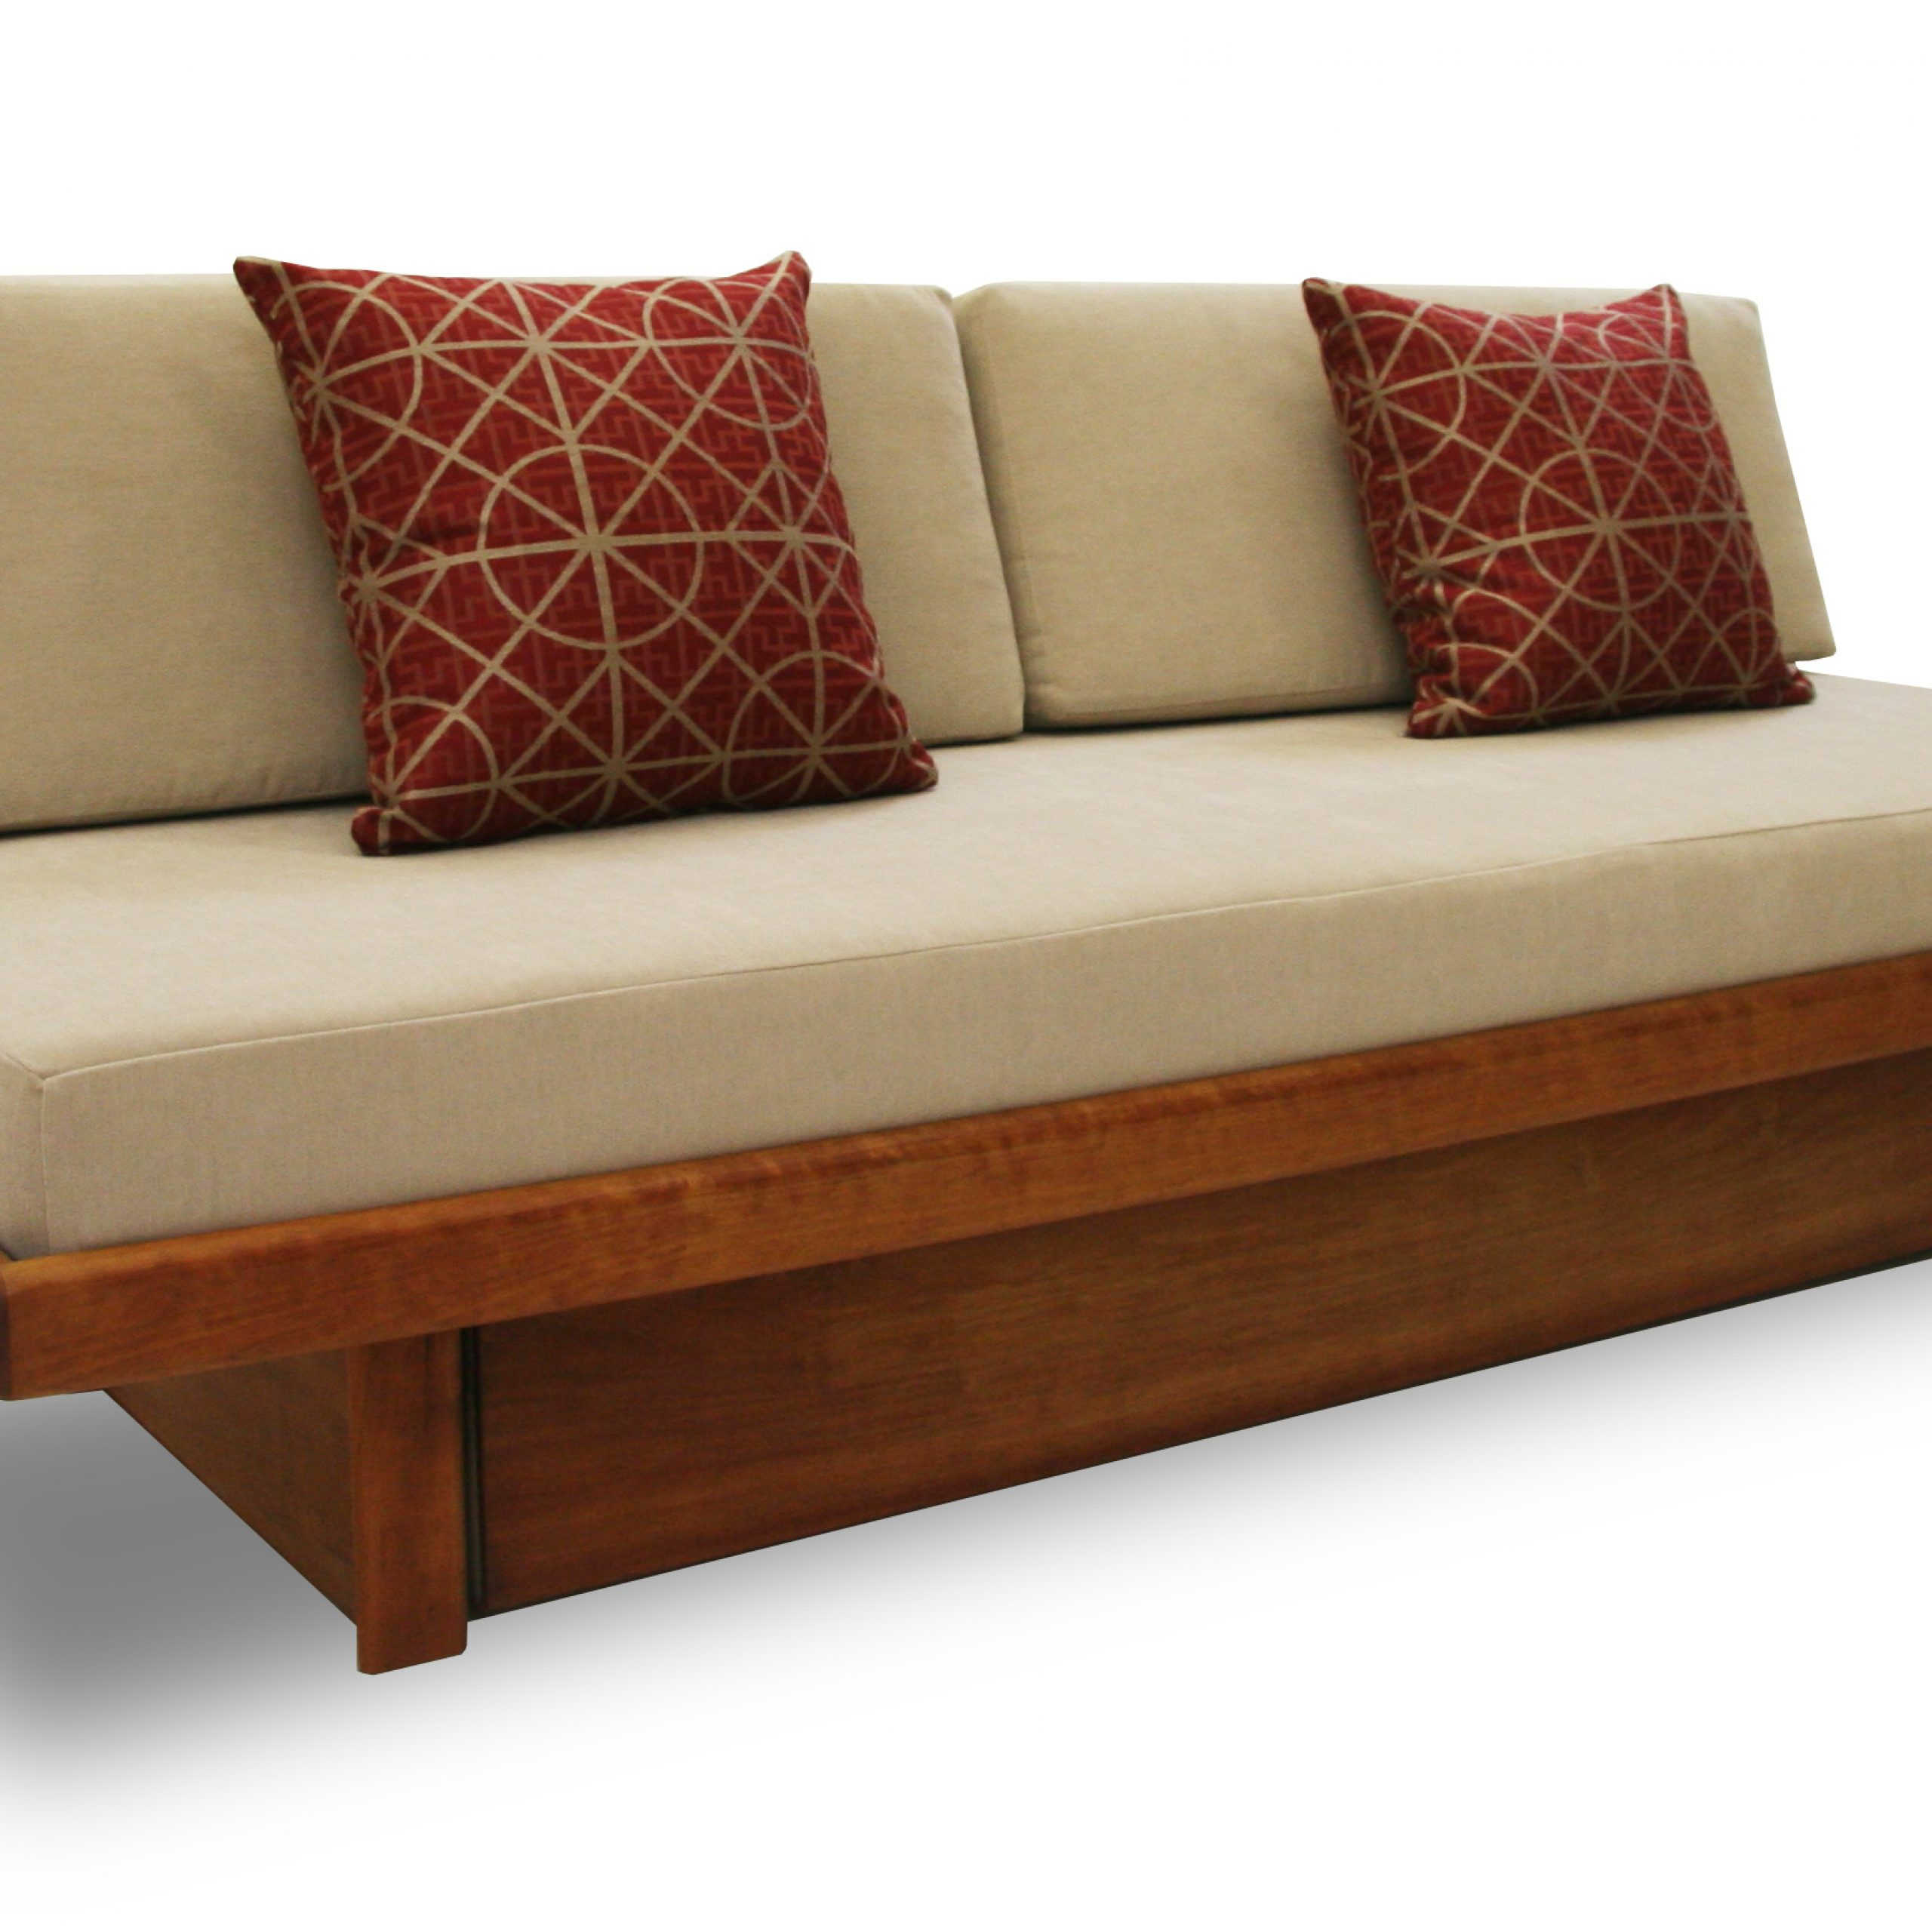 Mondrian Storage Daybed Couch Within Popular Twin Nancy Sectional Sofa Beds With Storage (View 13 of 20)